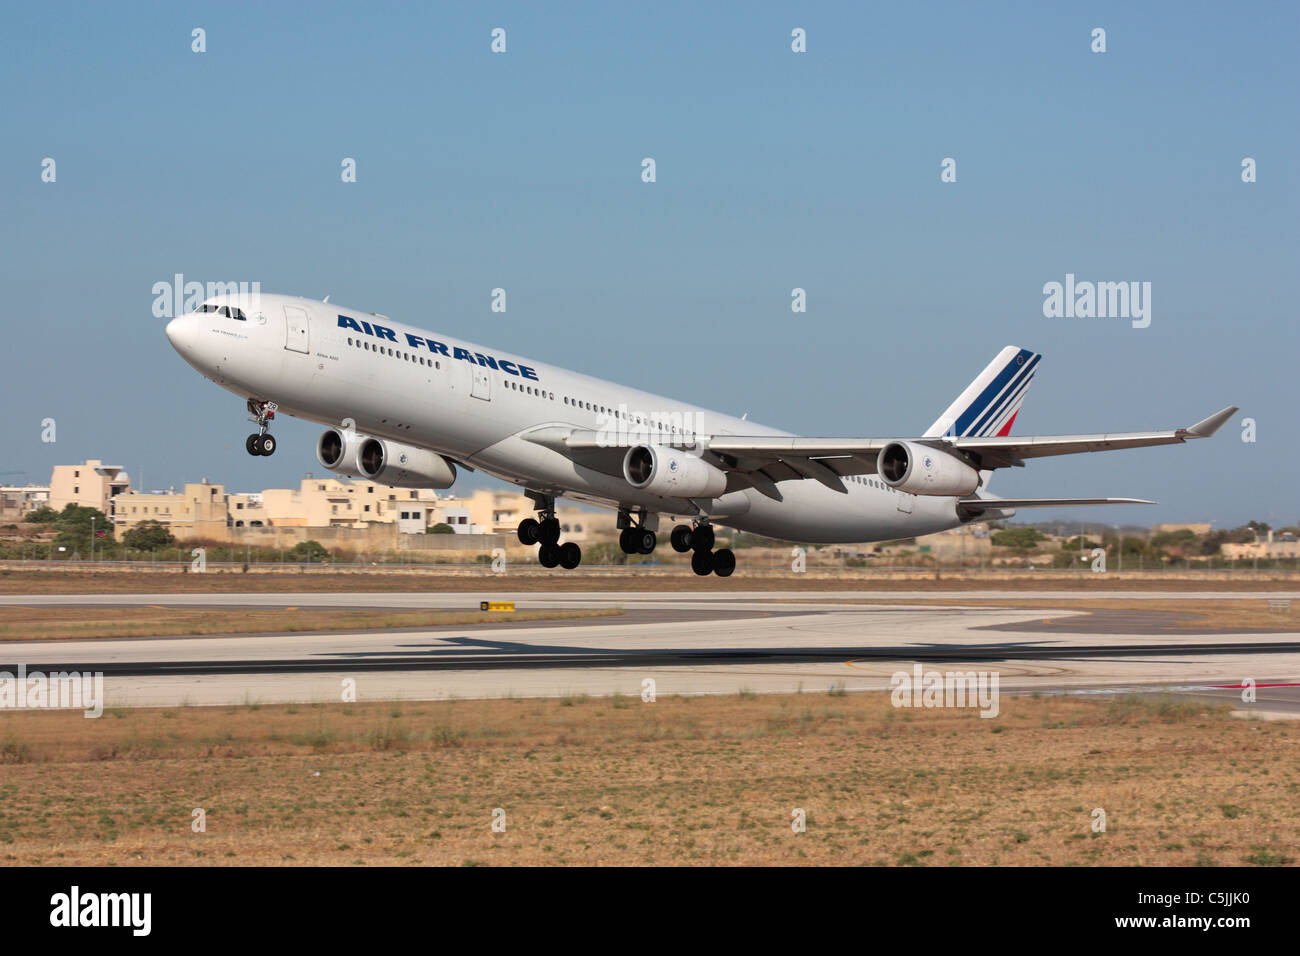 air france airbus a340 300 taking off from malta stock photo royalty free image 37903796 alamy. Black Bedroom Furniture Sets. Home Design Ideas